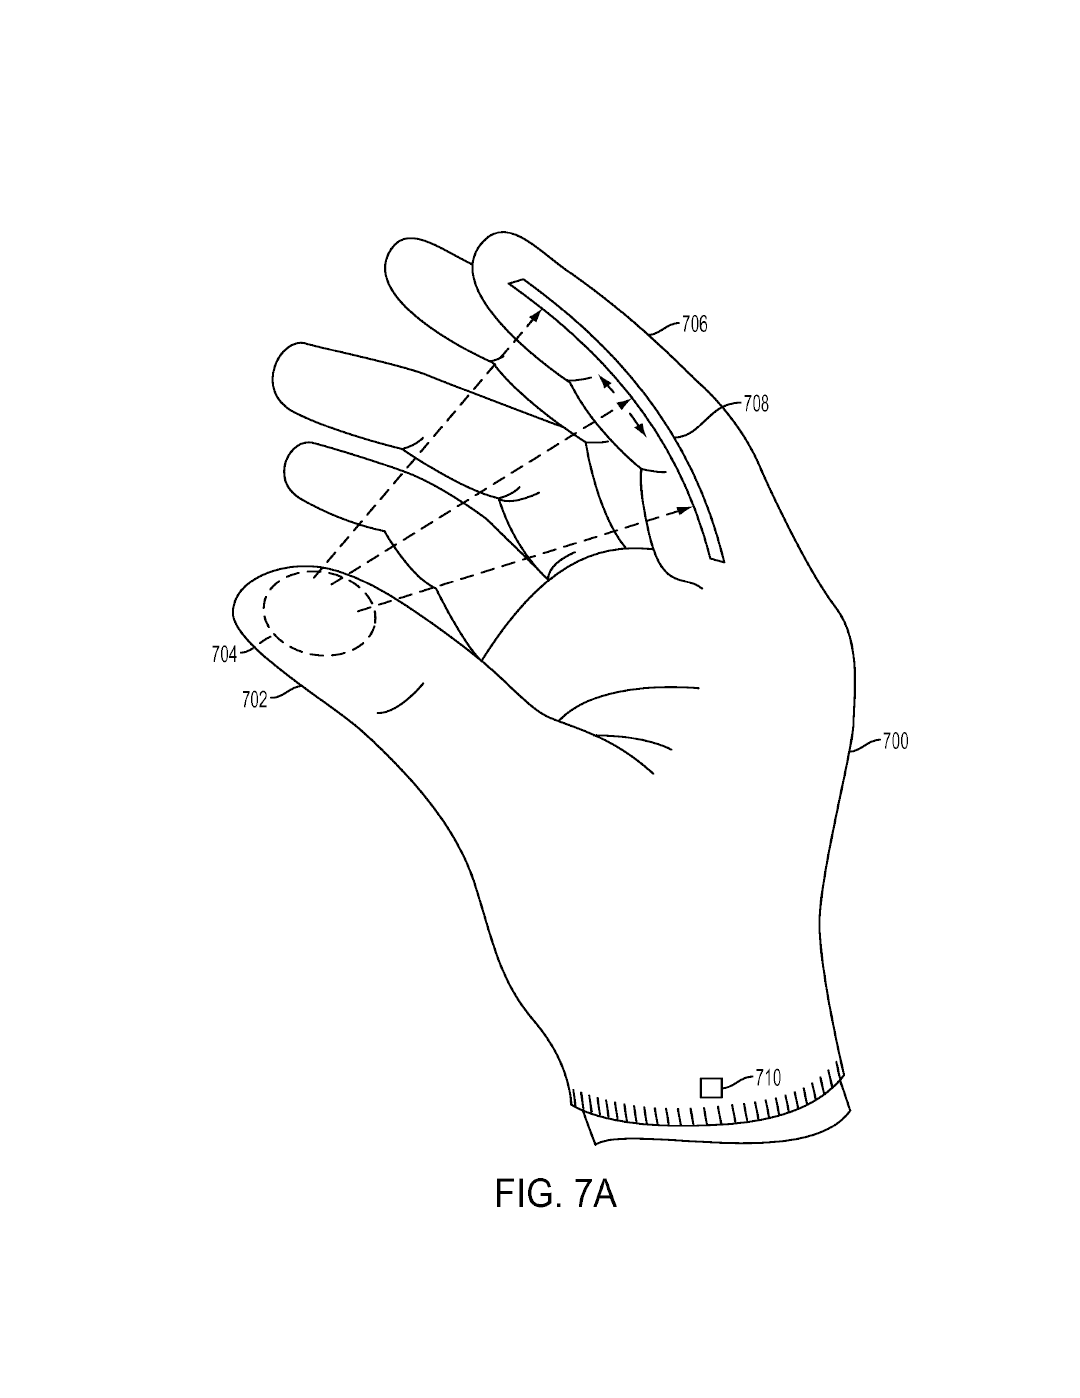 sony files 3 patents for glove controller for use with playstation PSU Shoes sony files 3 patents for glove controller for use with playstation vr playstation universe